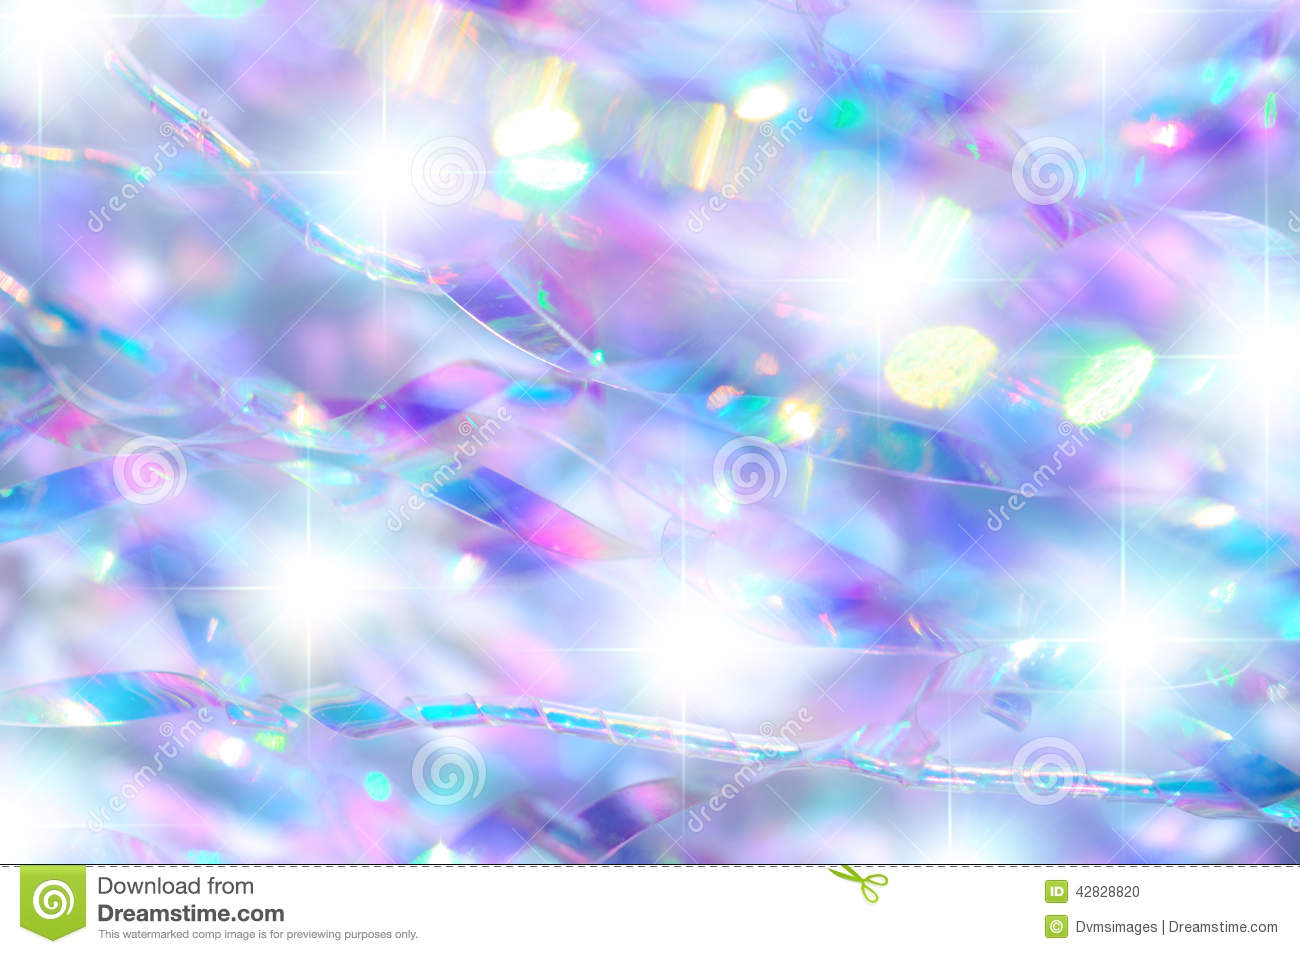 Close-up of decorative iridescent scatter with diffused bright stars.